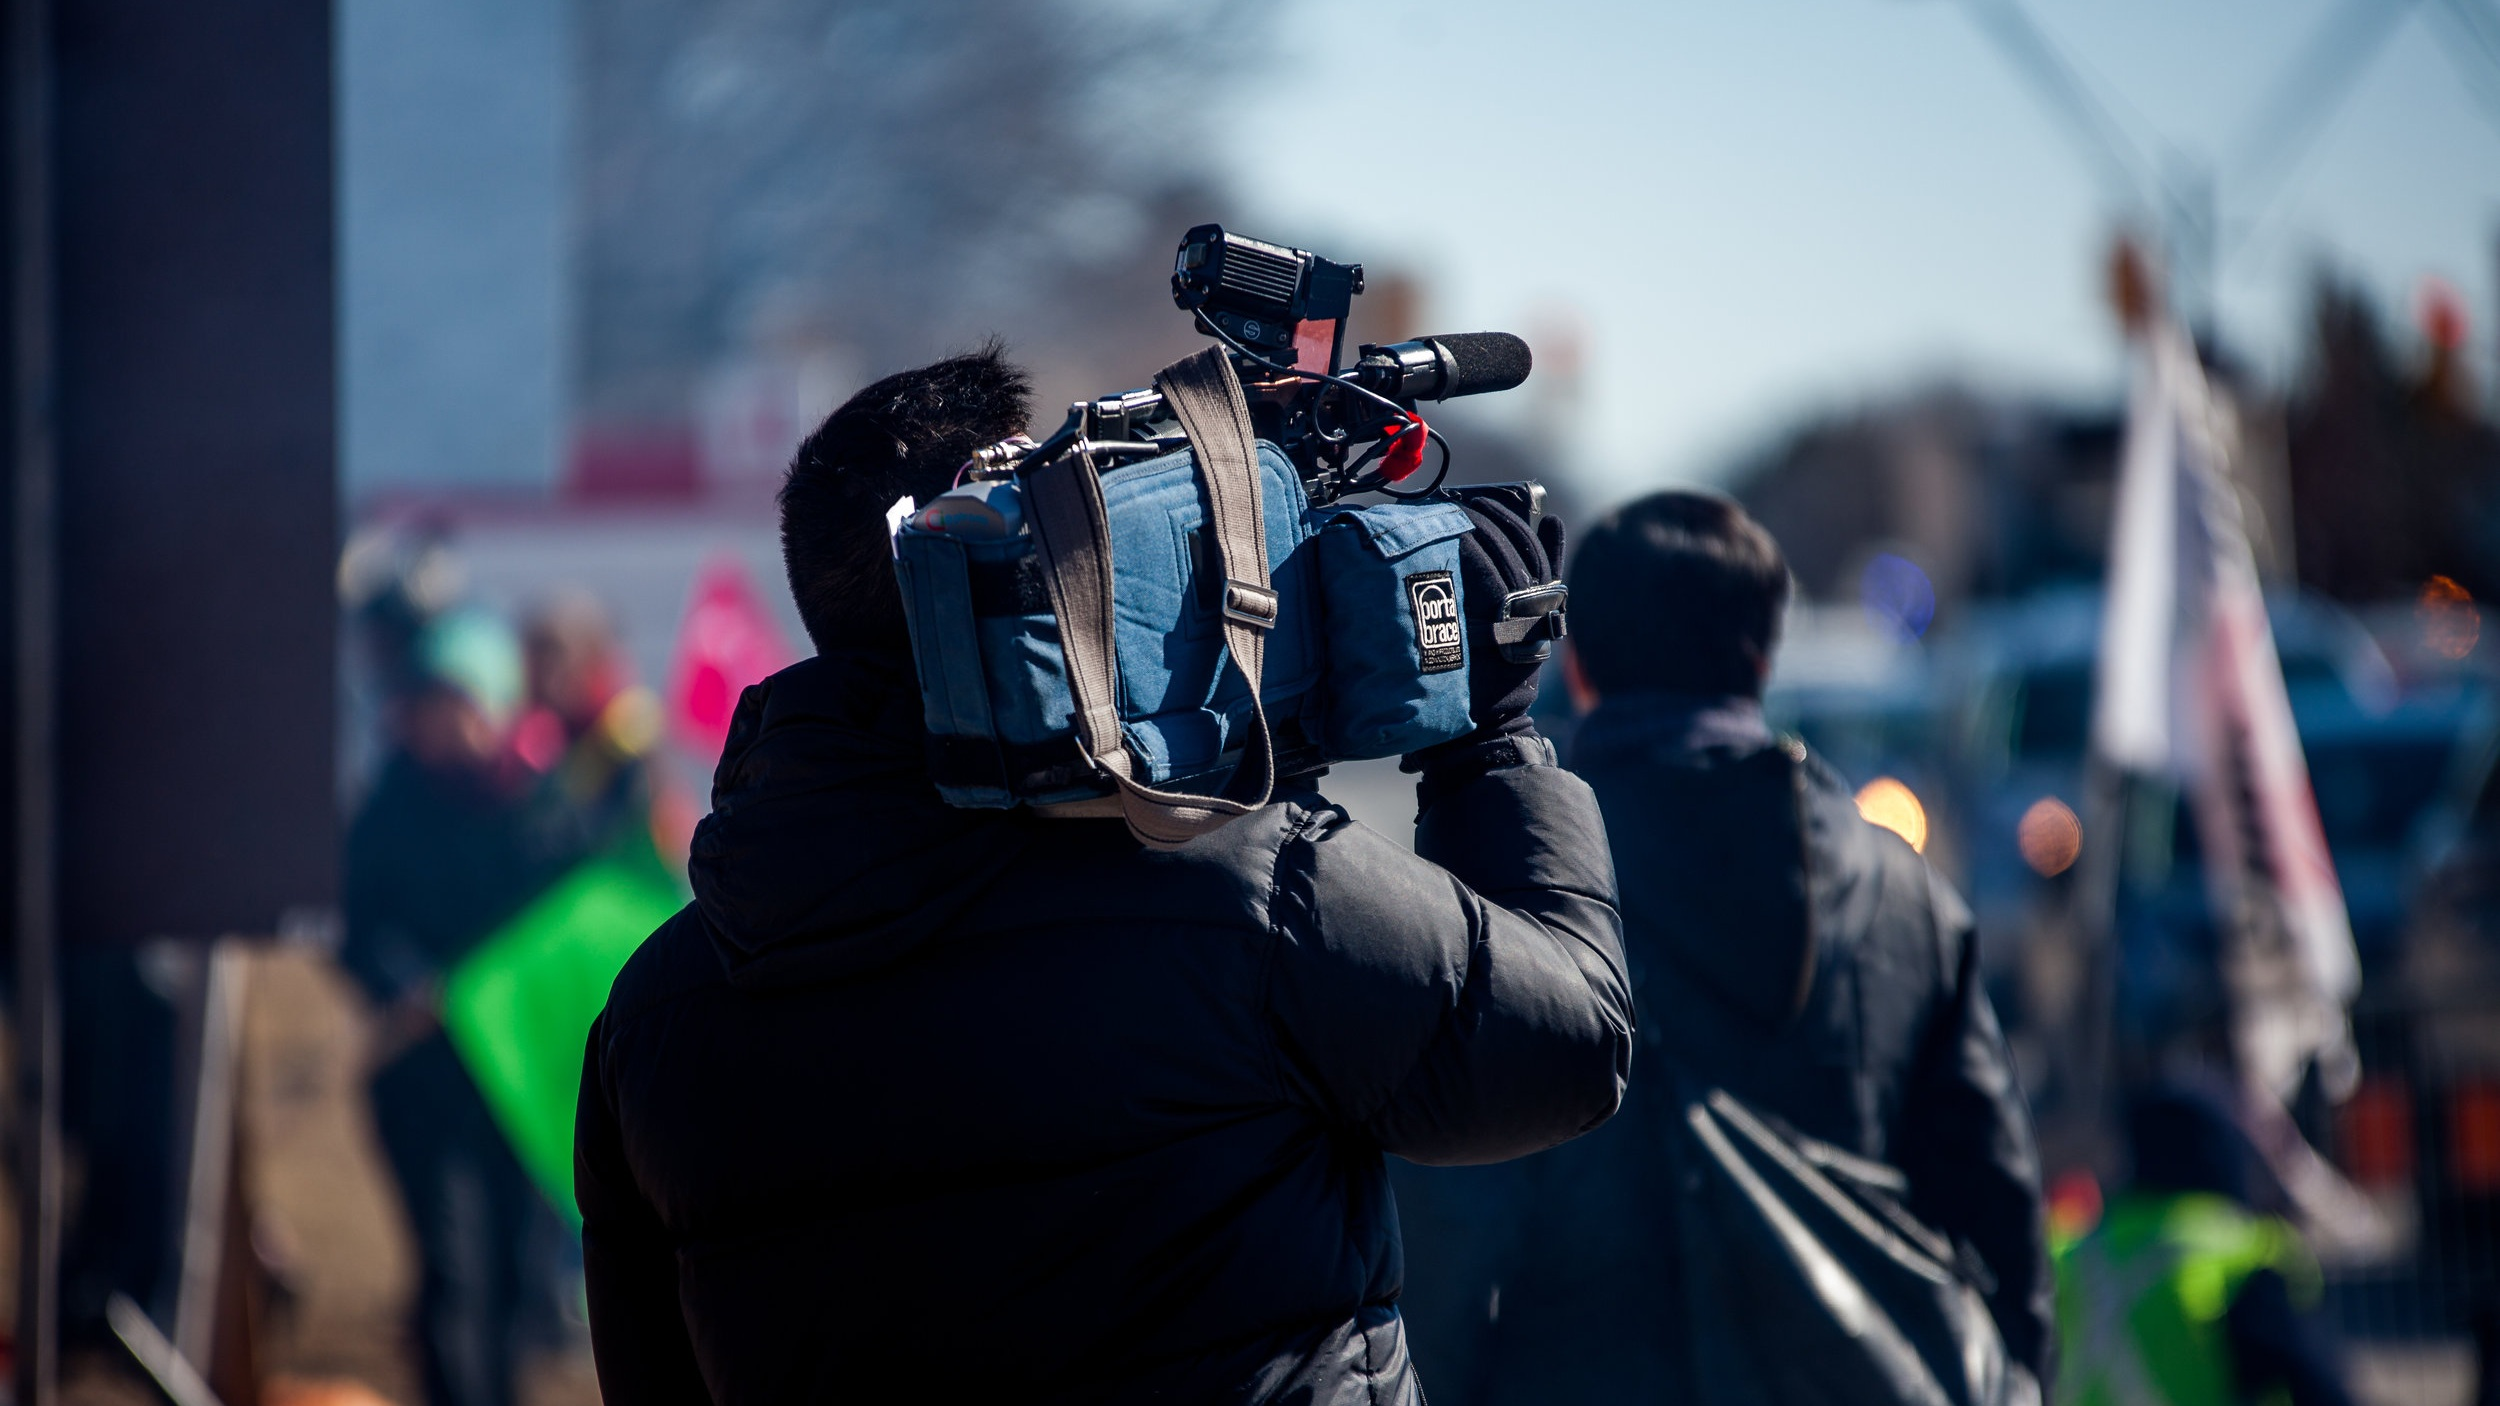 End to End Live Media Solutions - From our on-the-ground broadcast team to your global live audience, SHOWSTRE.AM video solutions are focused on delivering the most cutting edge live media services, driving viewership and unlocking possibilities at your 2019 or 2020 conference.